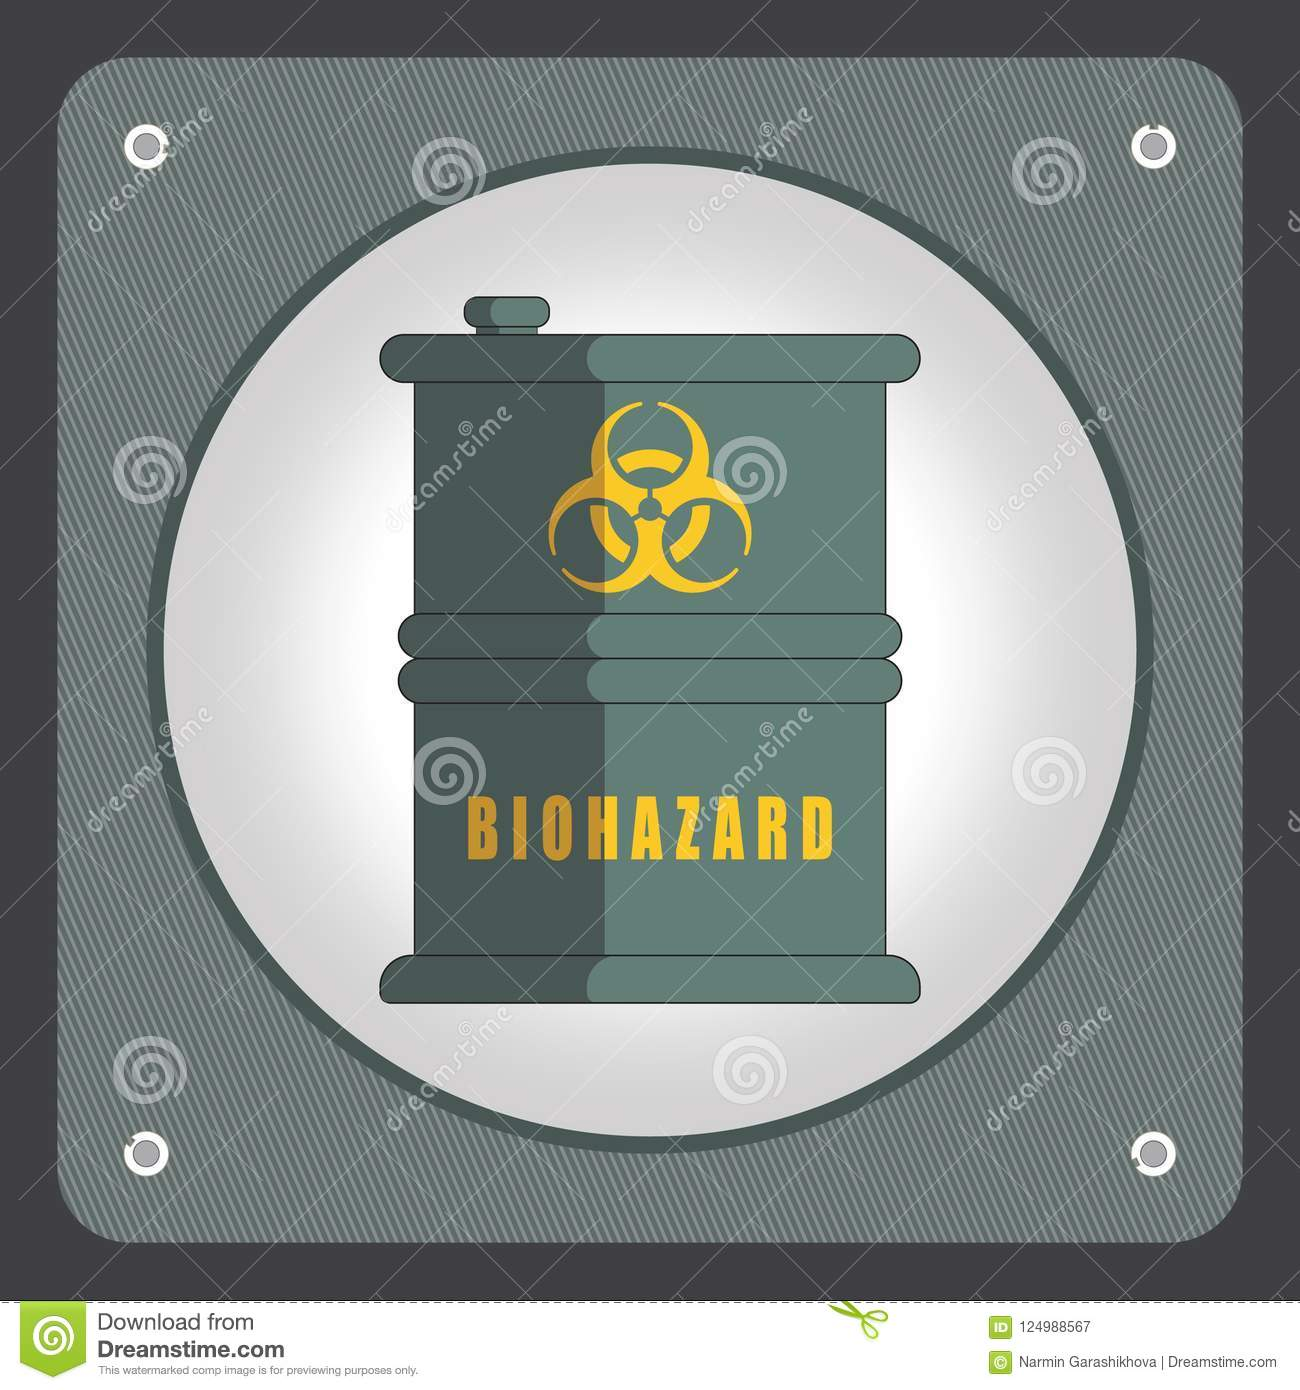 Barrel with hazardous chemicals. Ecology design concept with air, water and soil pollution. Flat icon vector illustration.